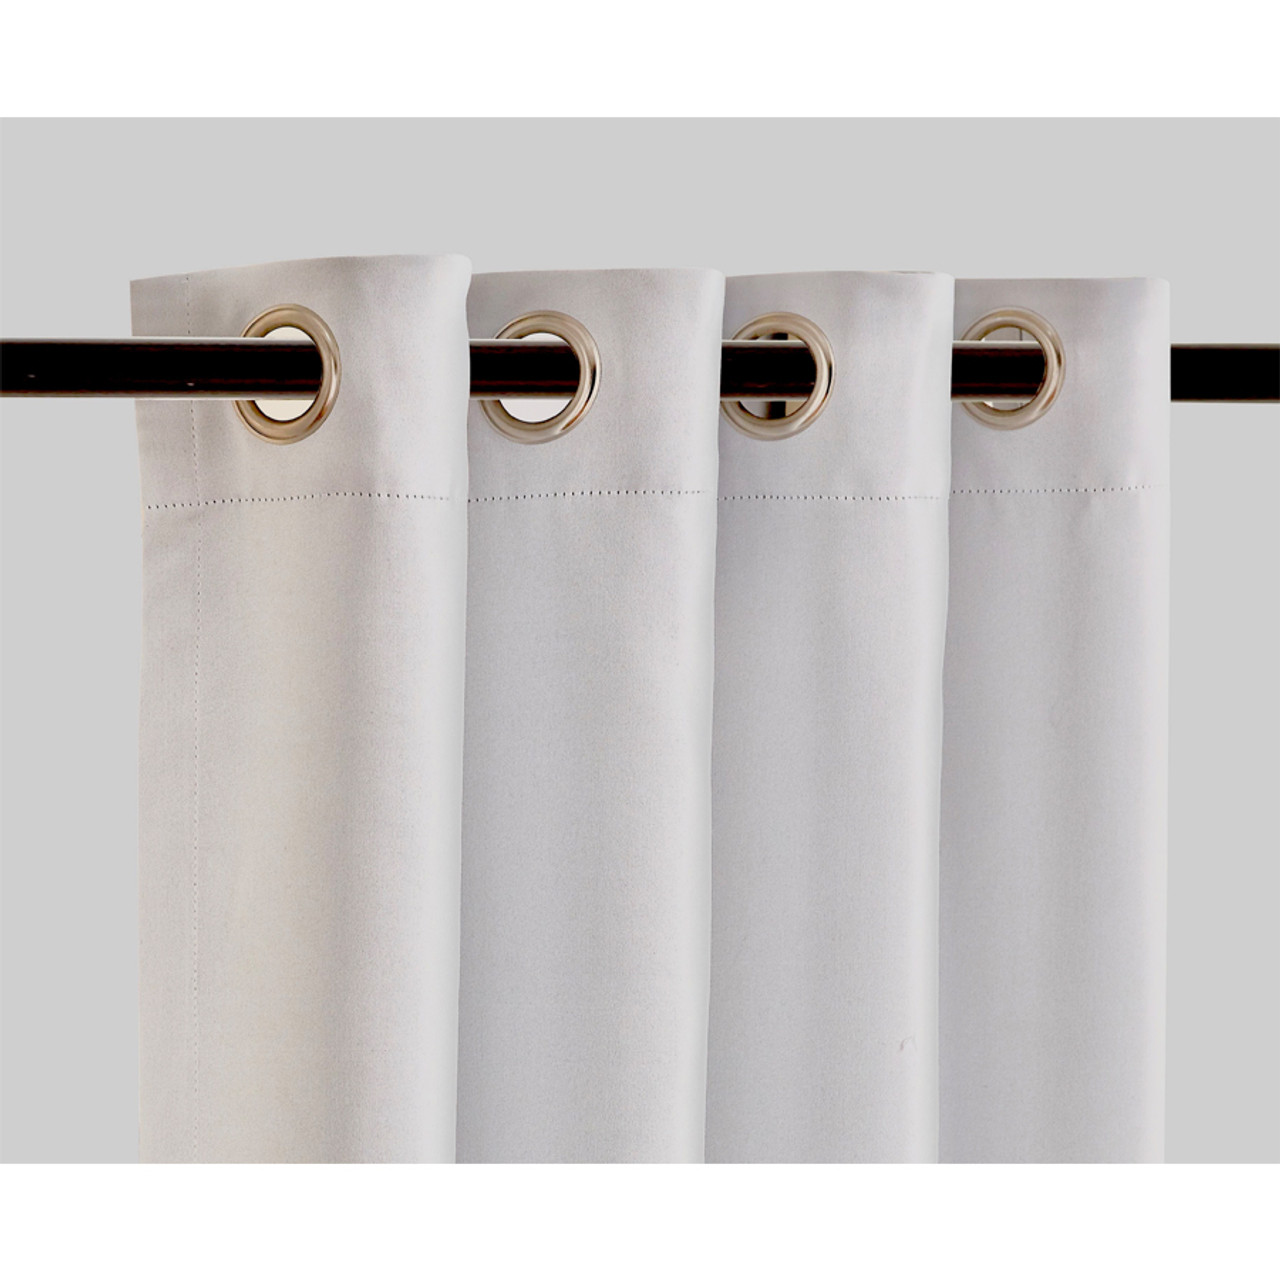 Blackout Room Divider Curtain Panel Thermal Insulated White Color in USA, California, New York, Los Angeles, San Francisco, Pennsylvania, Washington DC, Virginia, Maryland